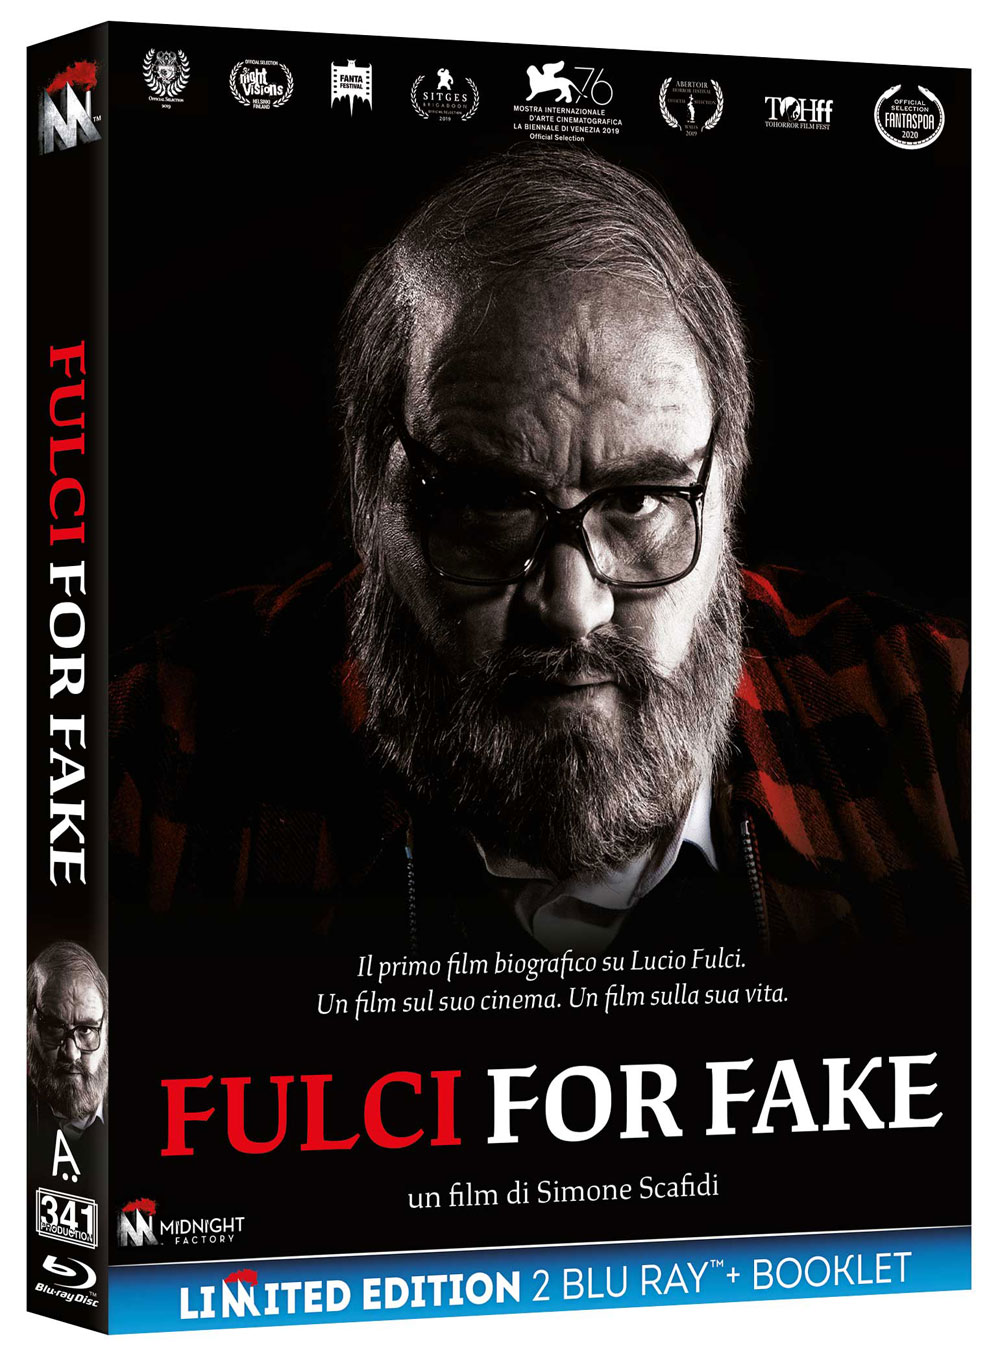 FULCI FOR FAKE (2 BLU-RAY+BOOKLET)